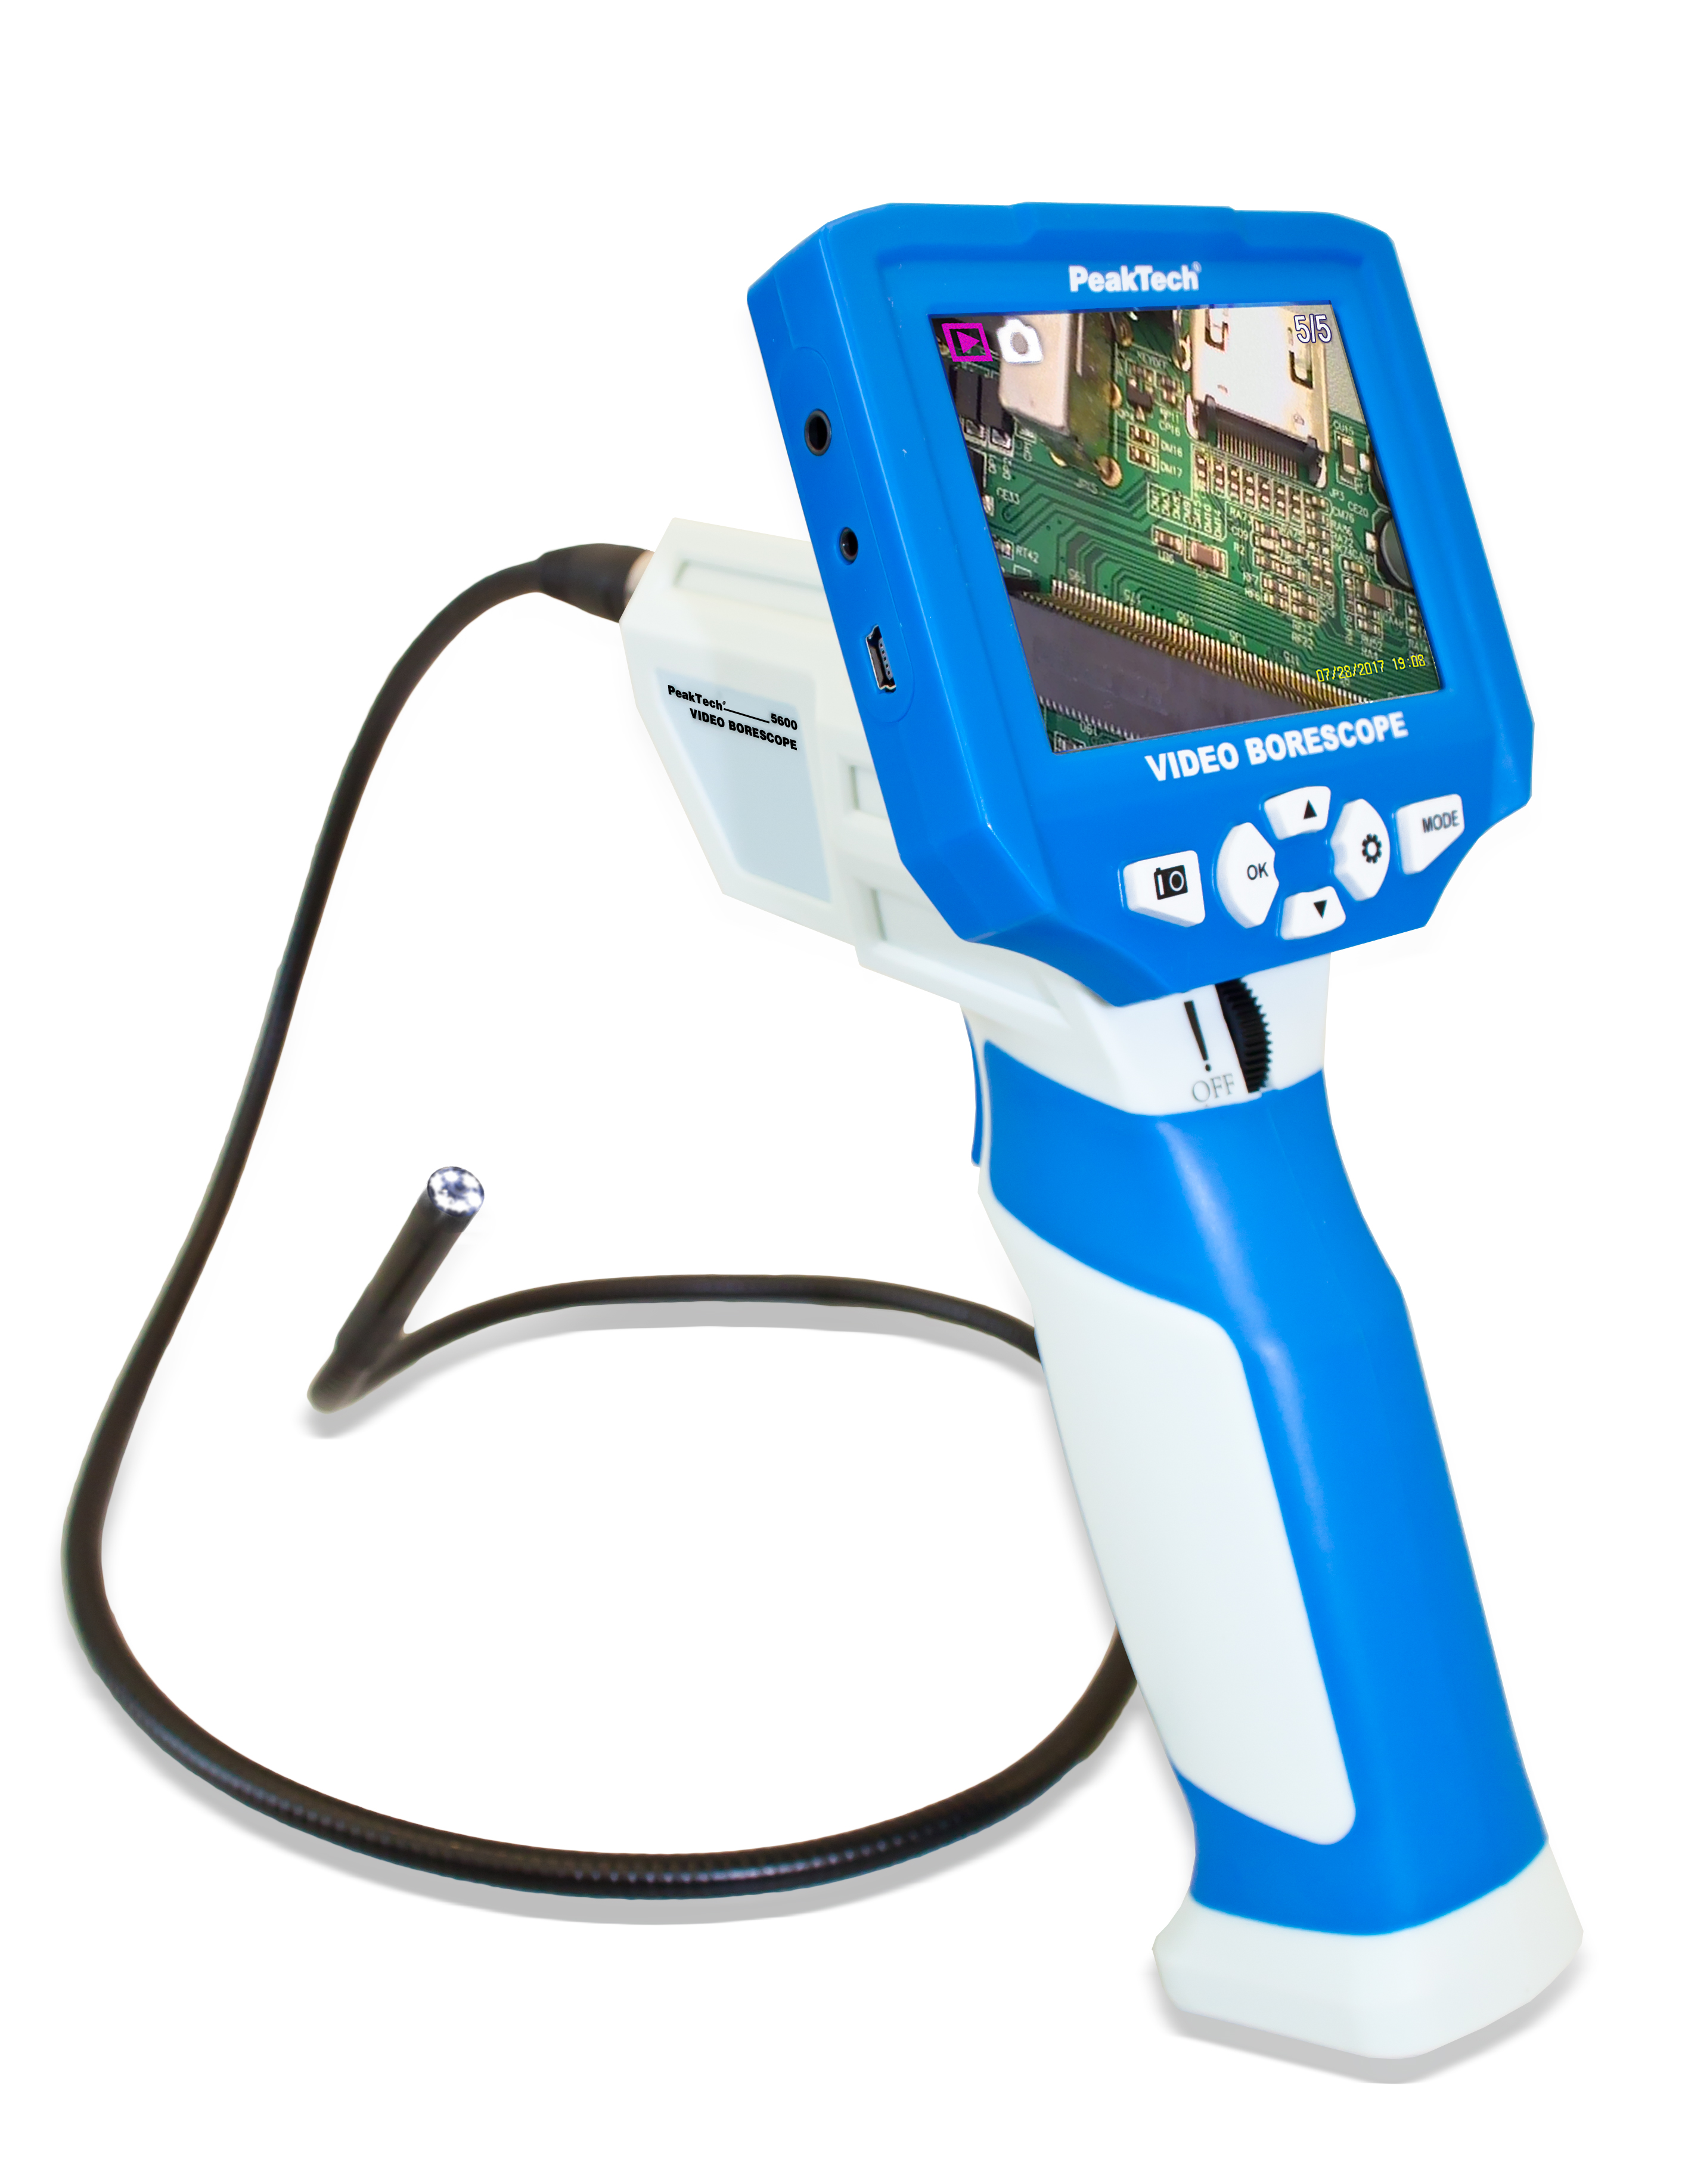 «PeakTech® P 5600» Video Borescope, Color TFT, USB and SD card